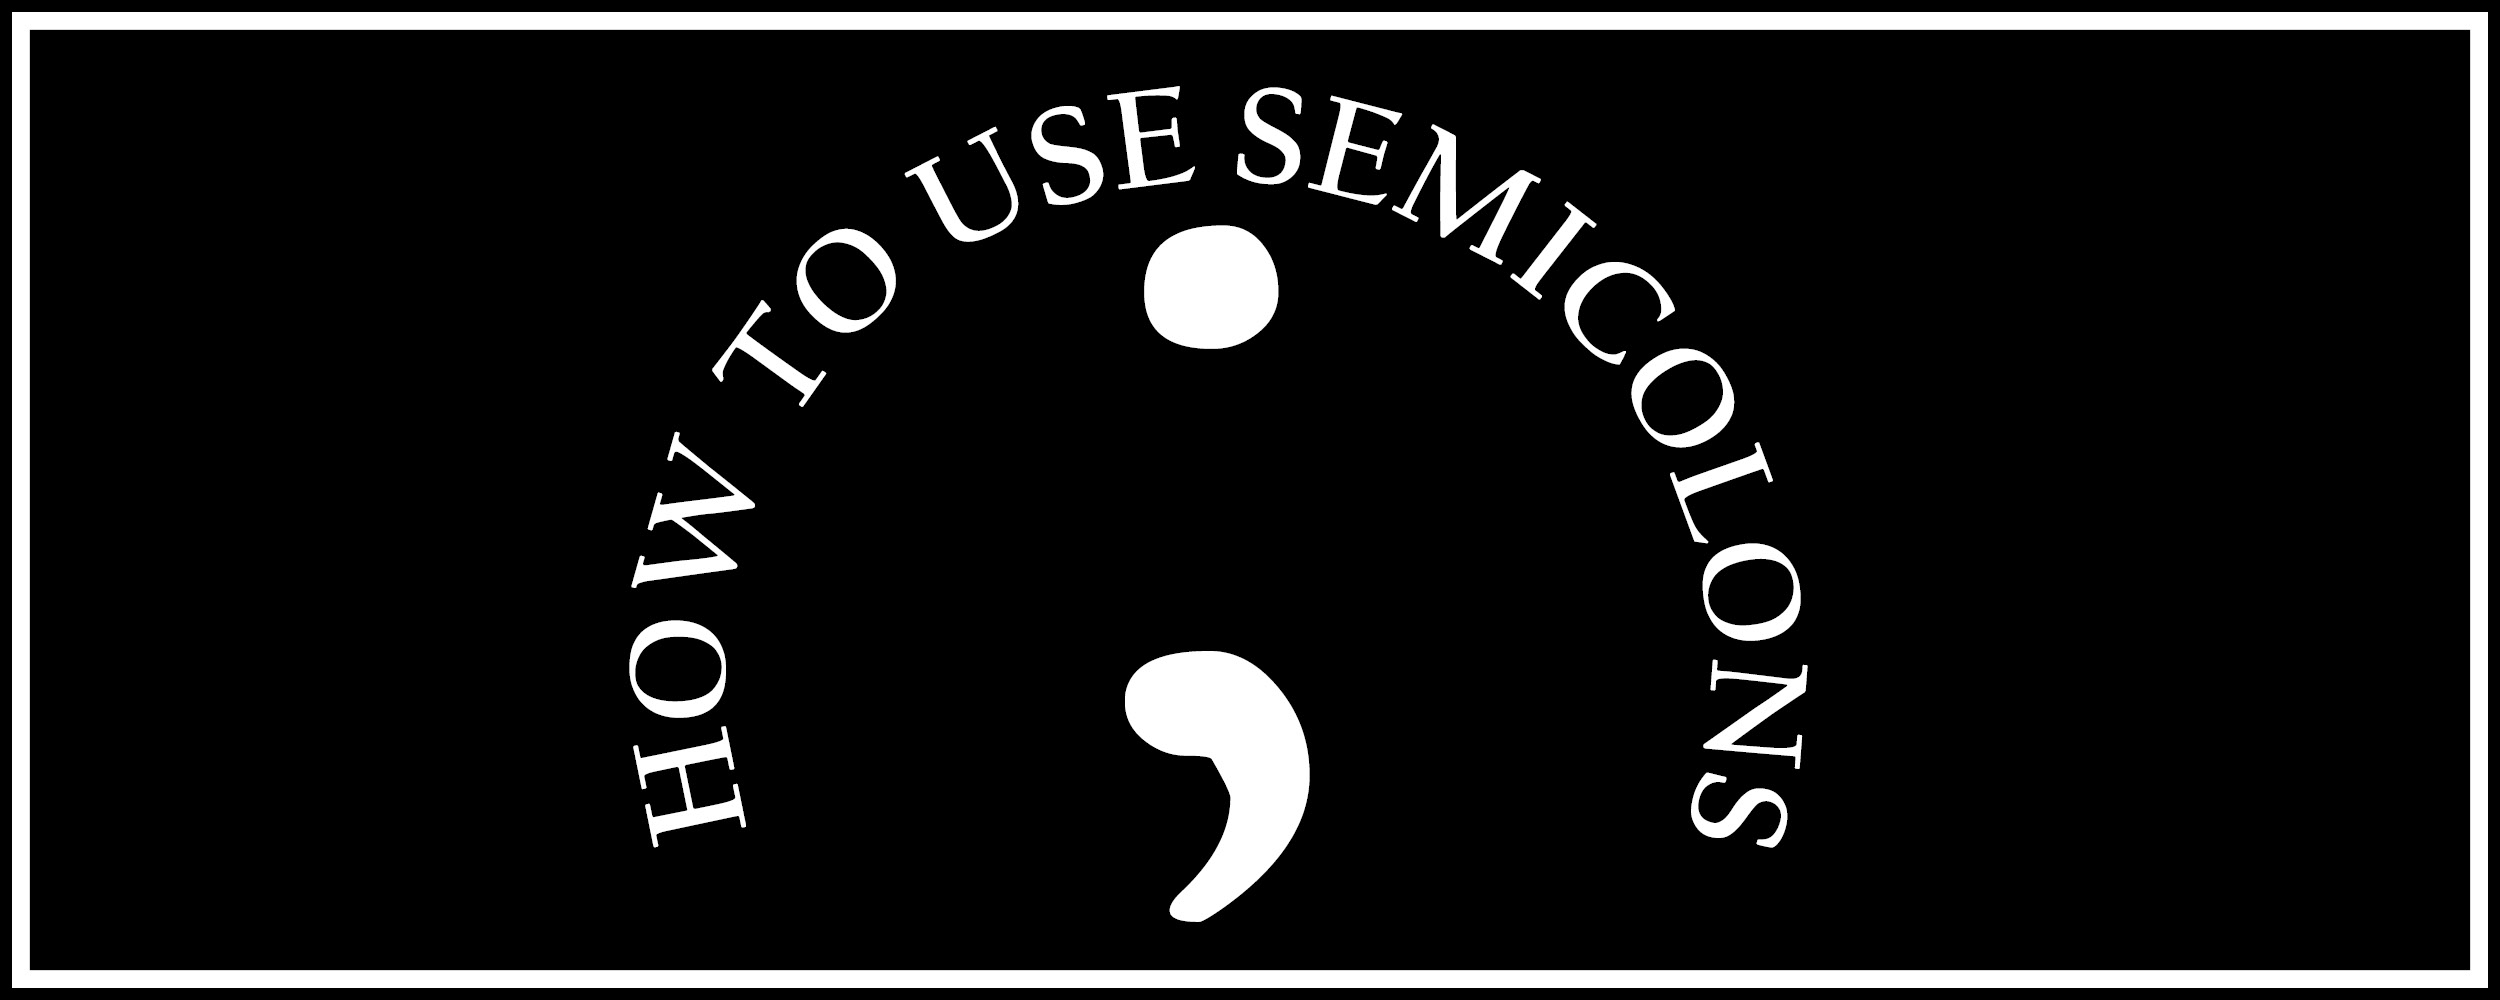 how-to-use-semicolon-banner